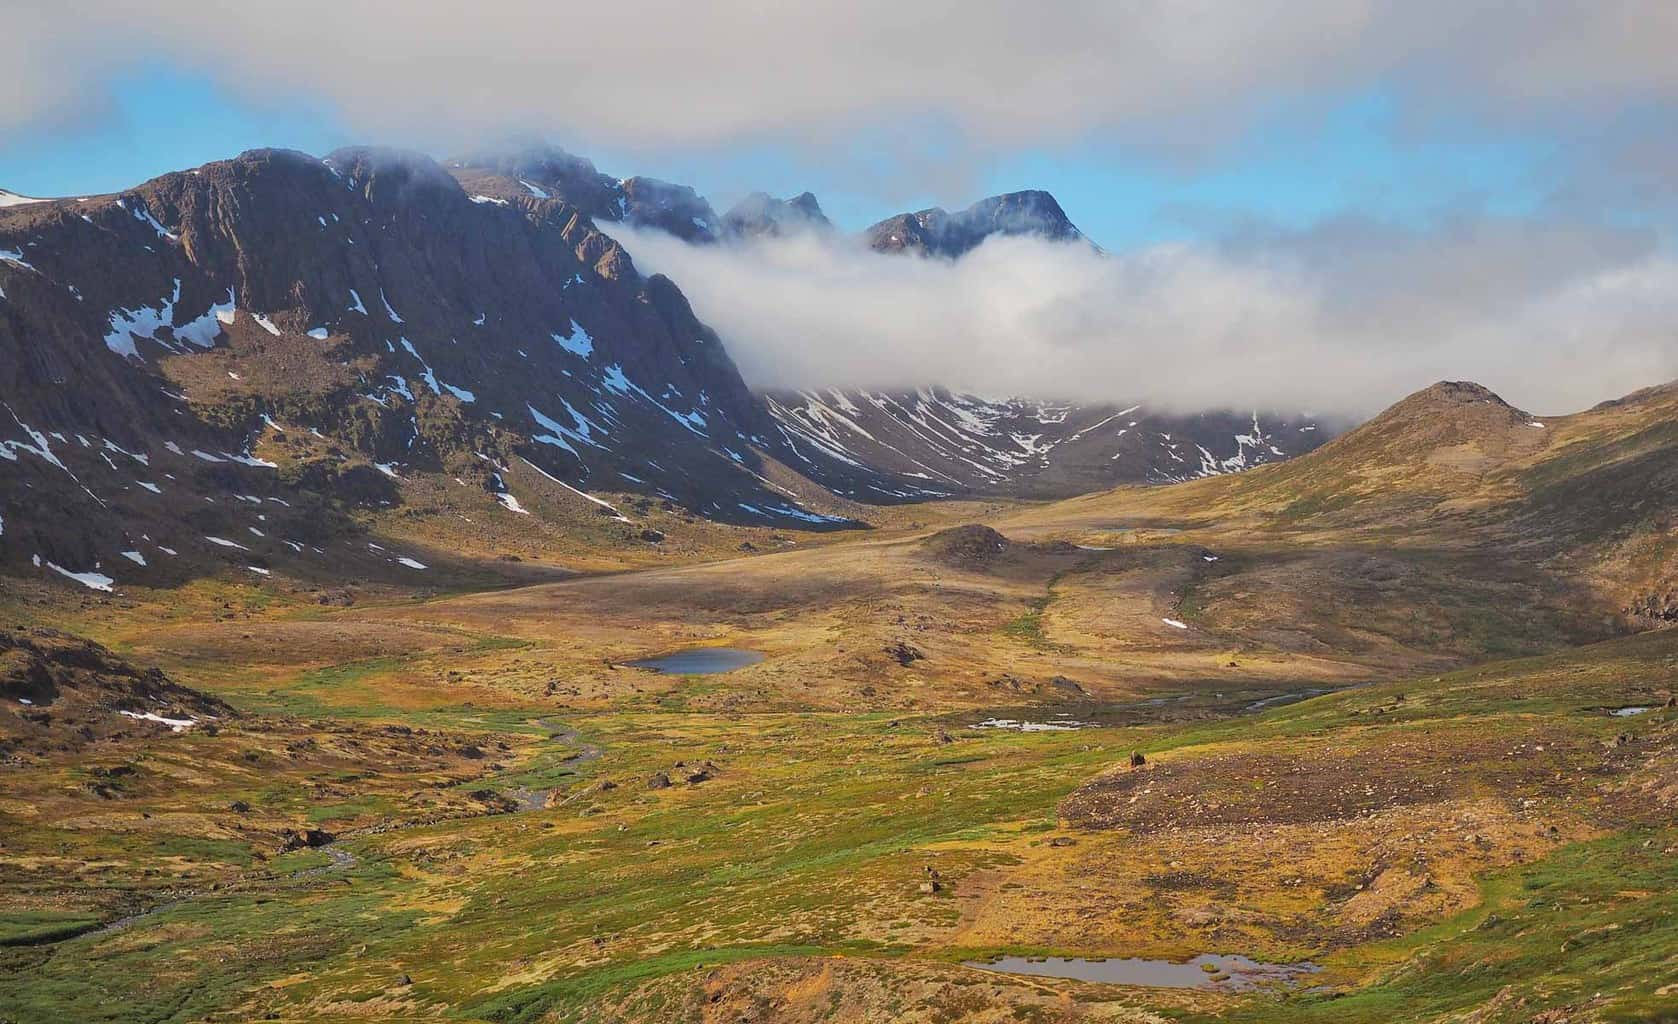 Scenery from the Arctic Circle Trail